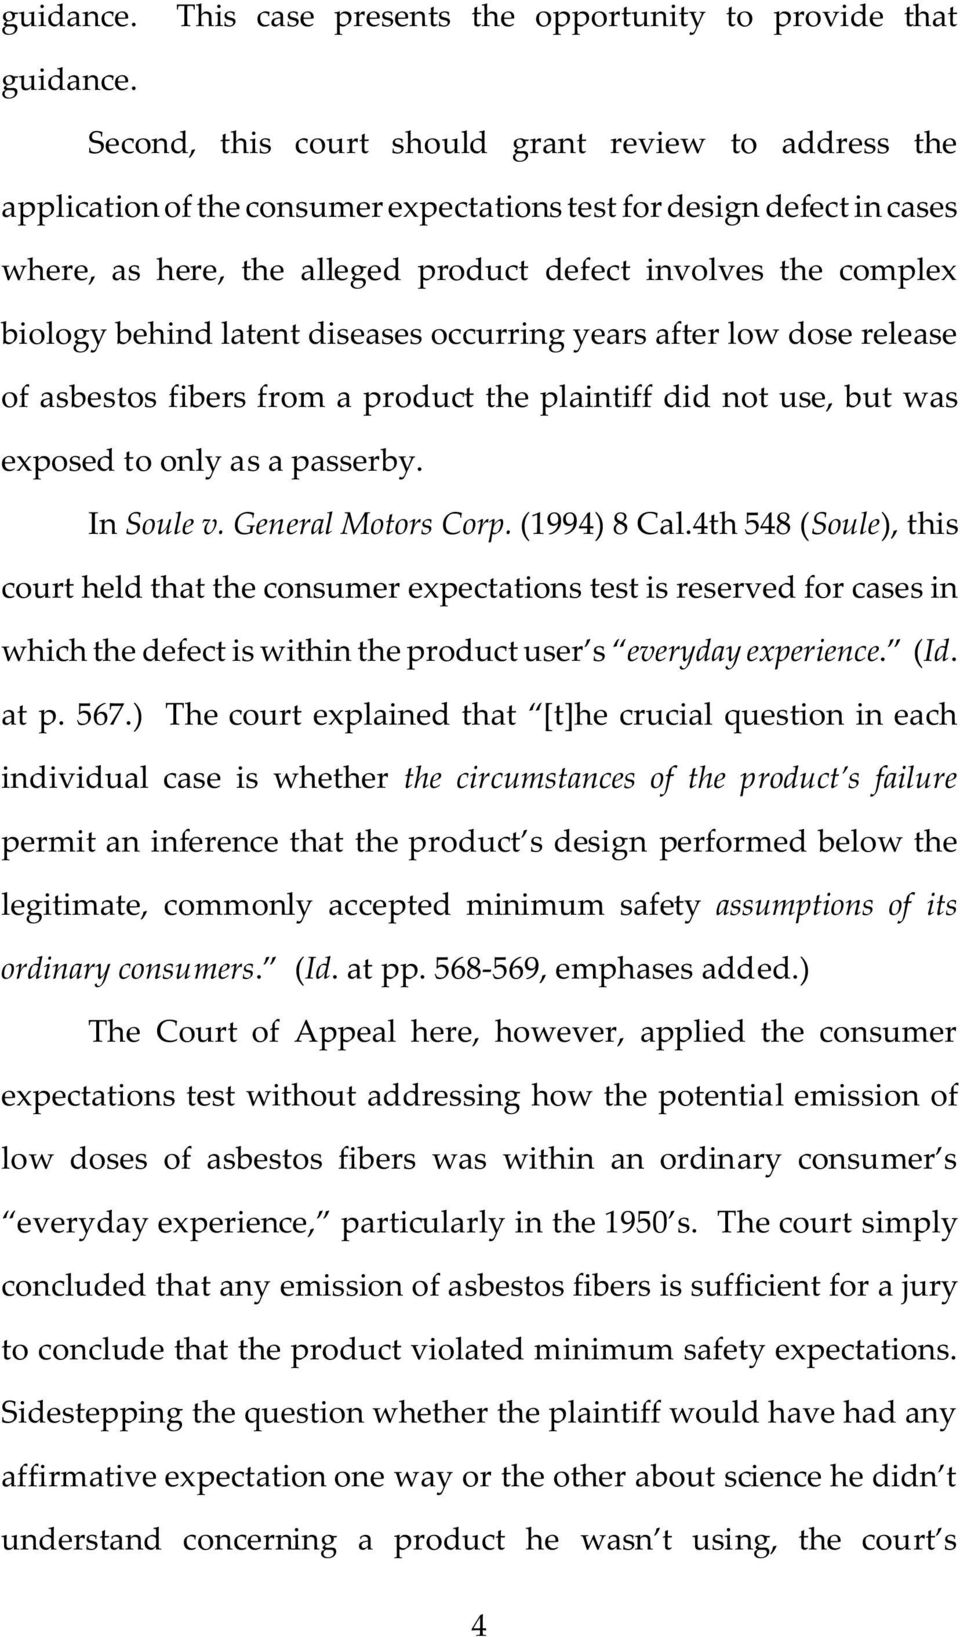 behind latent diseases occurring years after low dose release of asbestos fibers from a product the plaintiff did not use, but was exposed to only as a passerby. In Soule v. General Motors Corp.